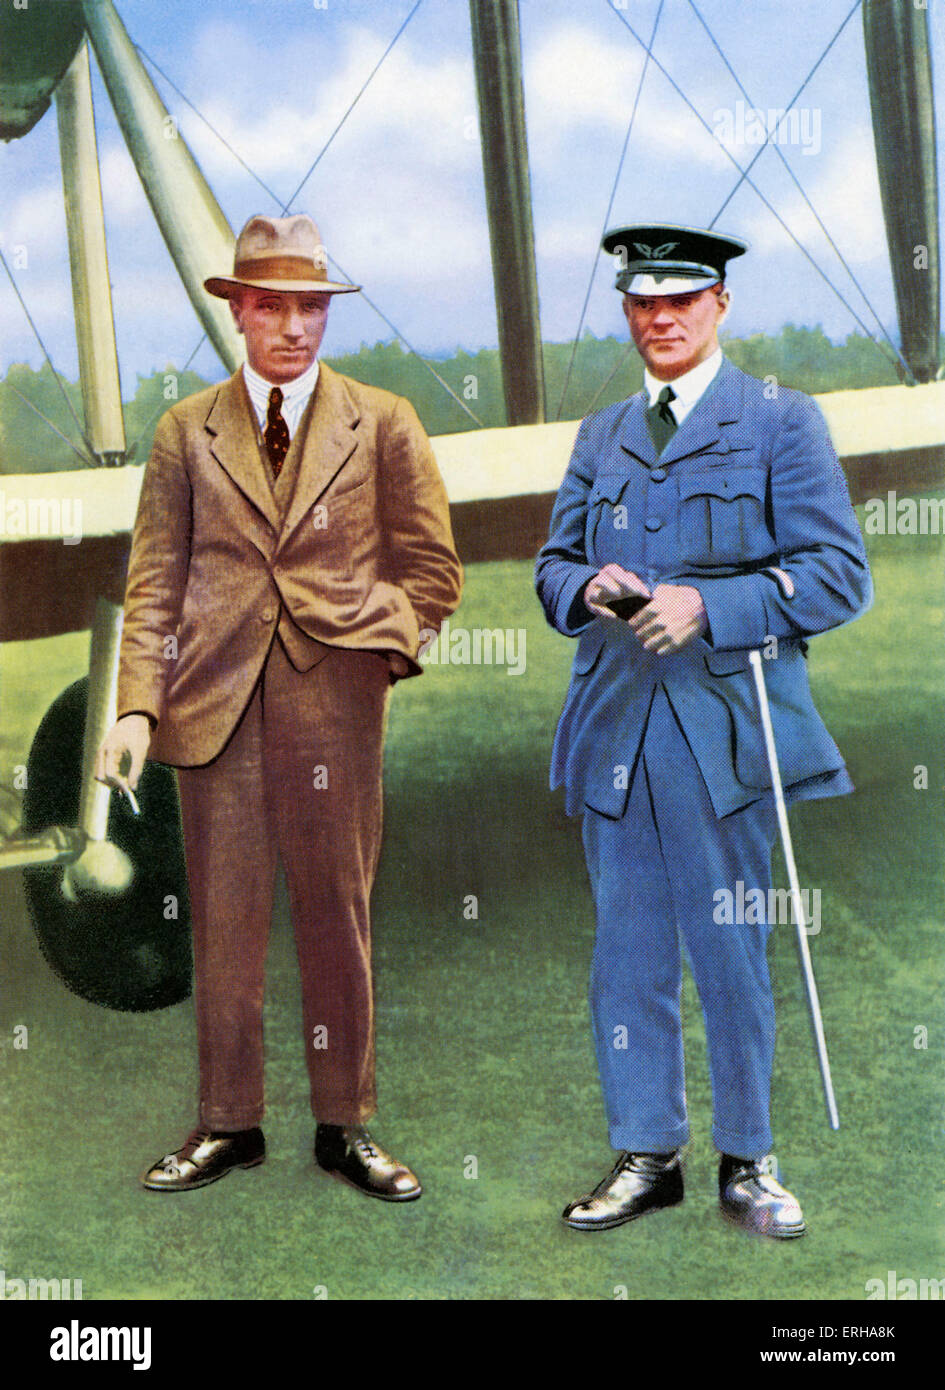 John Alcock (1892-1919) with Arthur Whitten Brown (1886-1948). Alcock and Brown piloted the first non-stop transatlantic Stock Photo